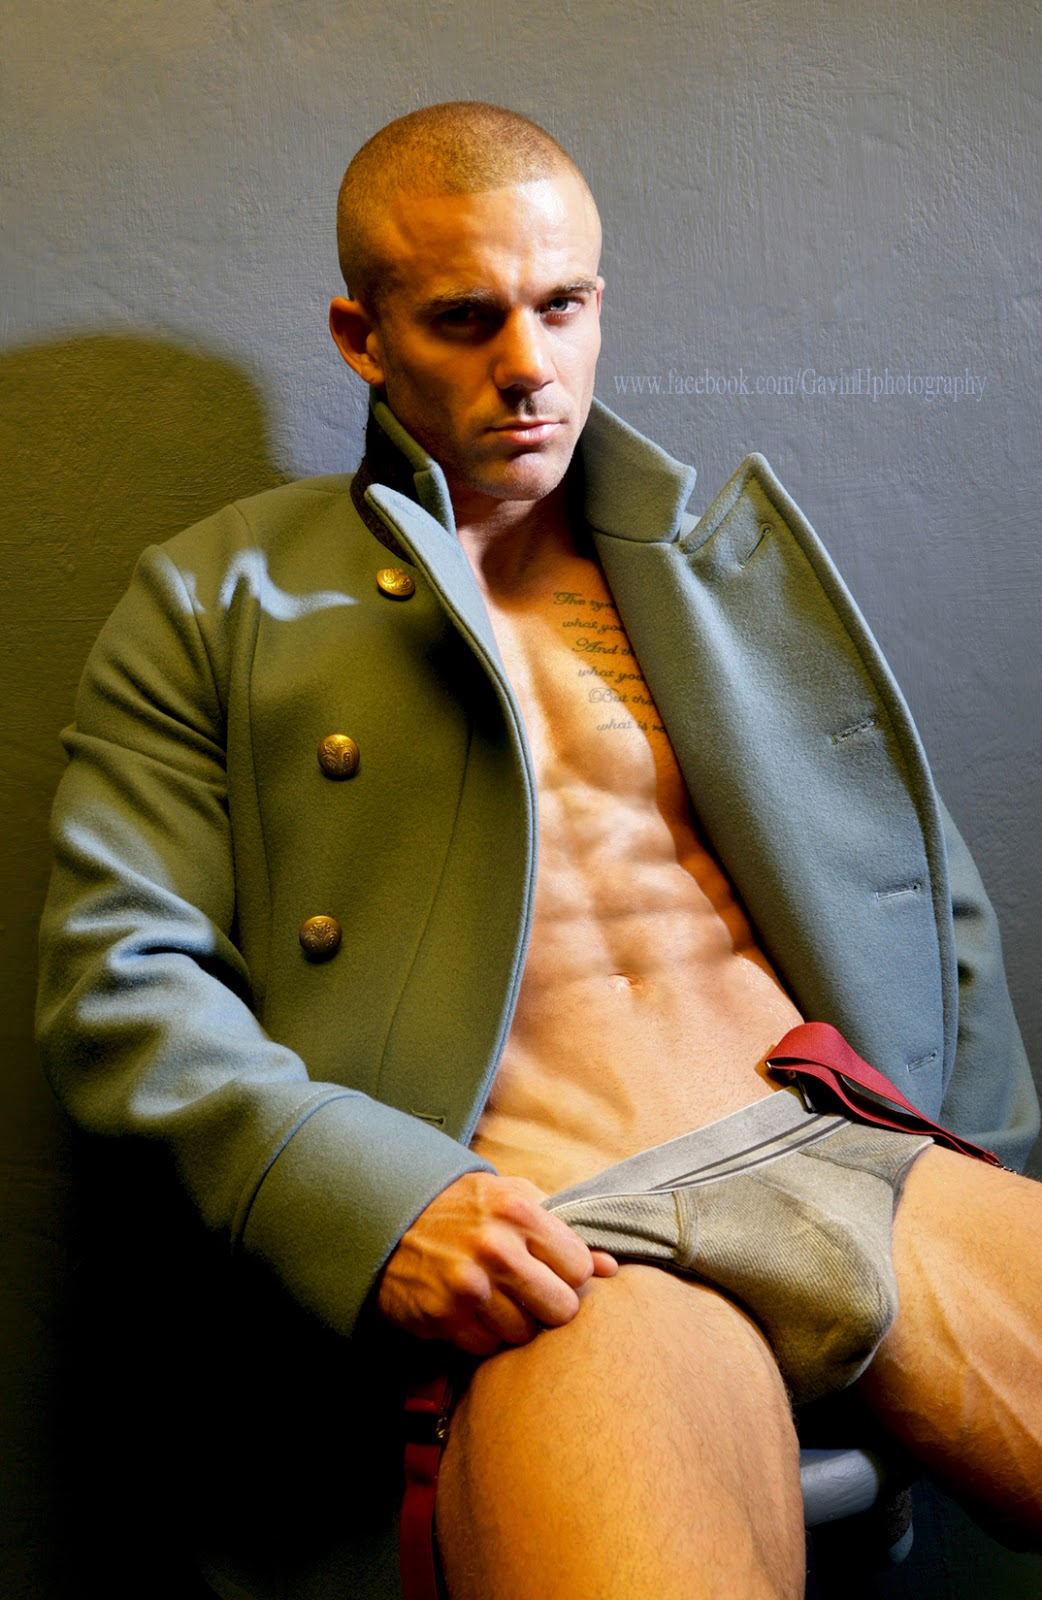 Harsh Judgement editorial by Gavin Harrison for Dominus magazine - model Ashley Morris